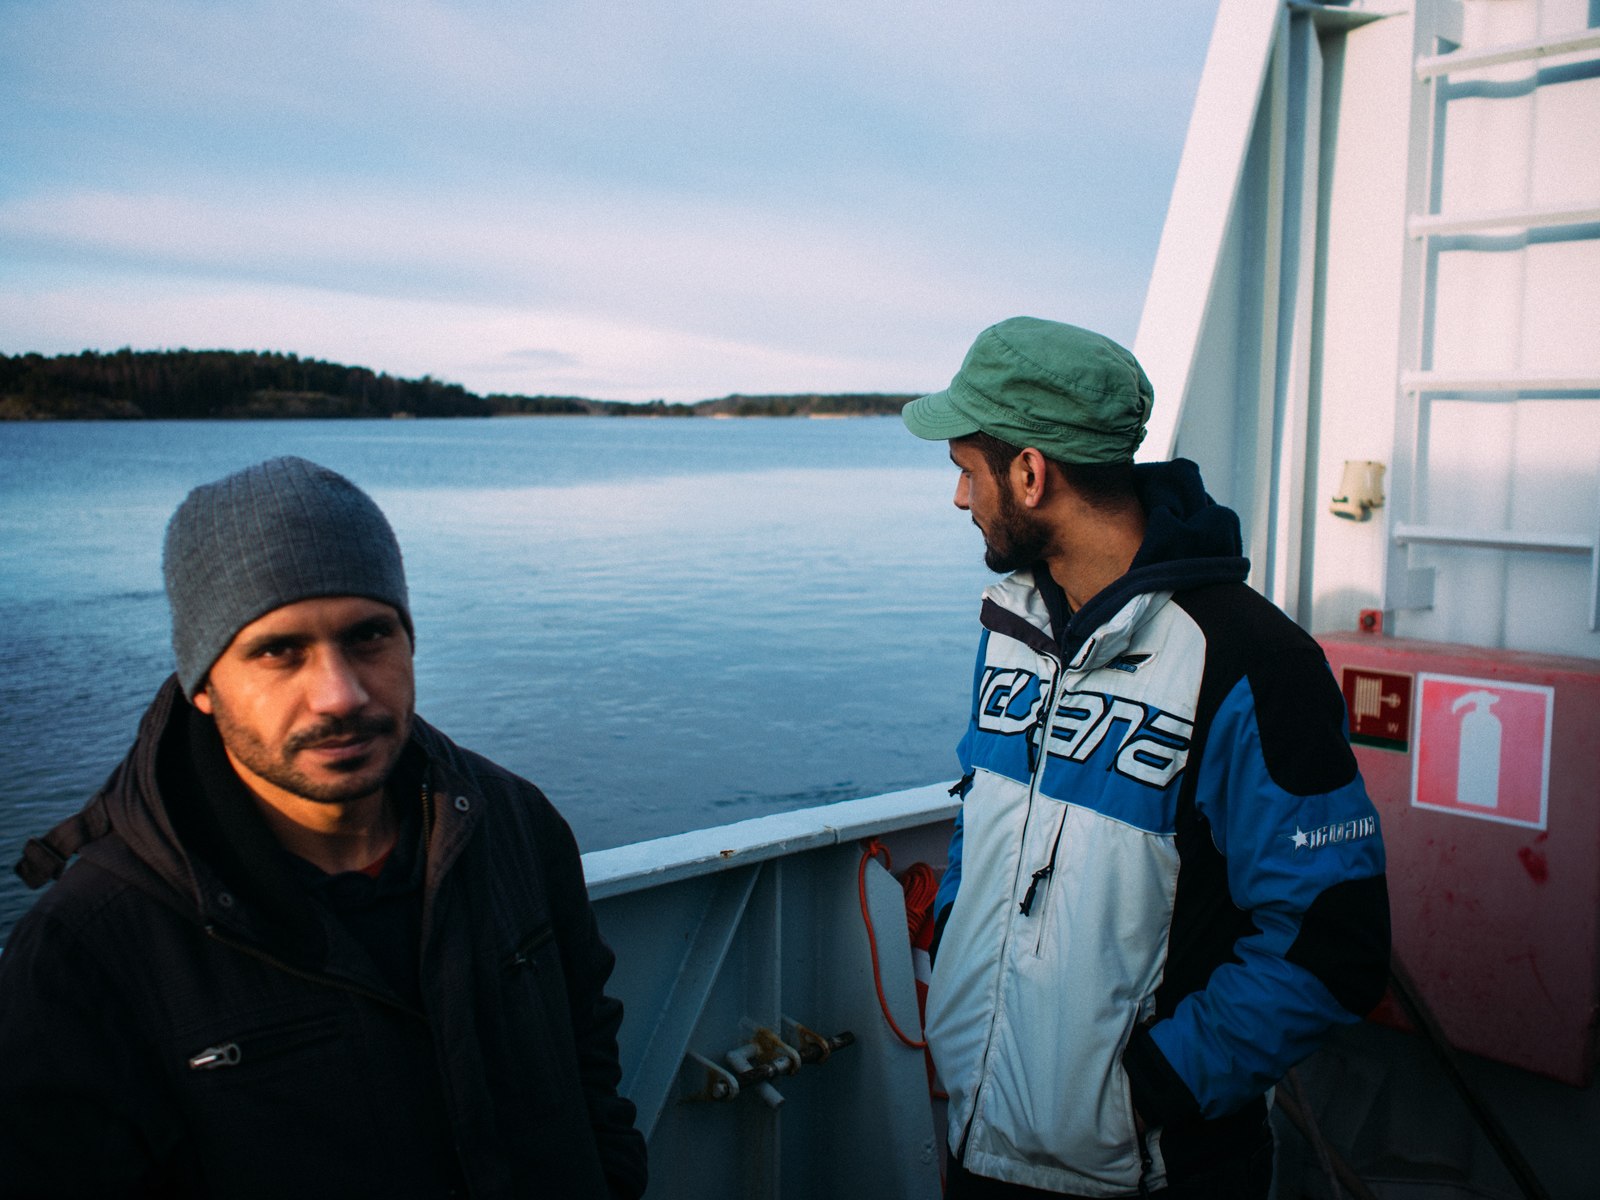 Yousef 35 years old is father of 5 kids and uncle of Ihab, he left Baghdad in 2015 just when his nephew organised the trip from Turkey to Greece. Their trip is similar to the one of the hundreds of thousands of people that crossed the Aegean sea and half Europe to reach Austria, Germany, Holland, Sweden and Finland.